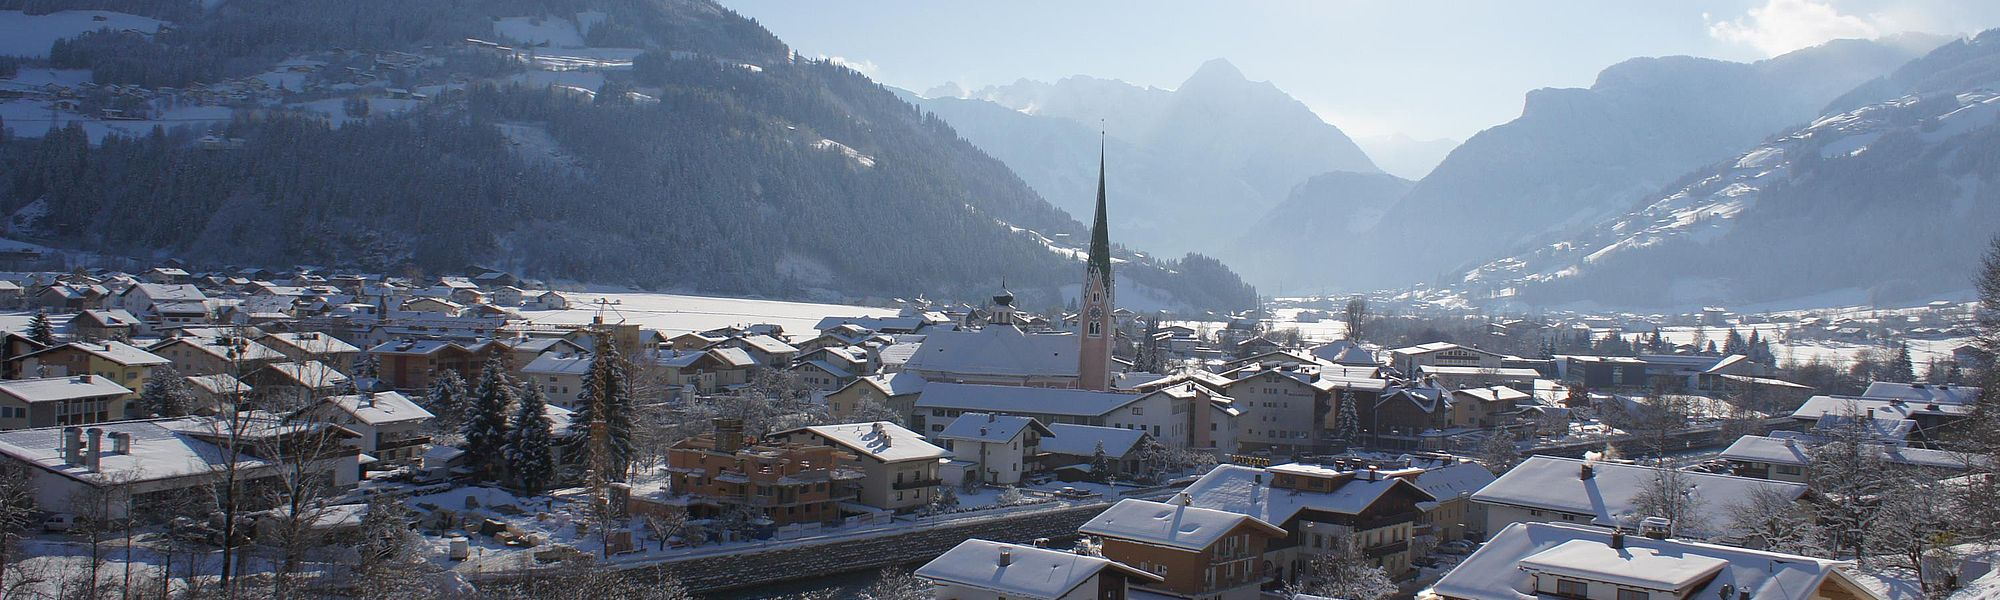 Aktivurlaub in Zell am Ziller im Winter